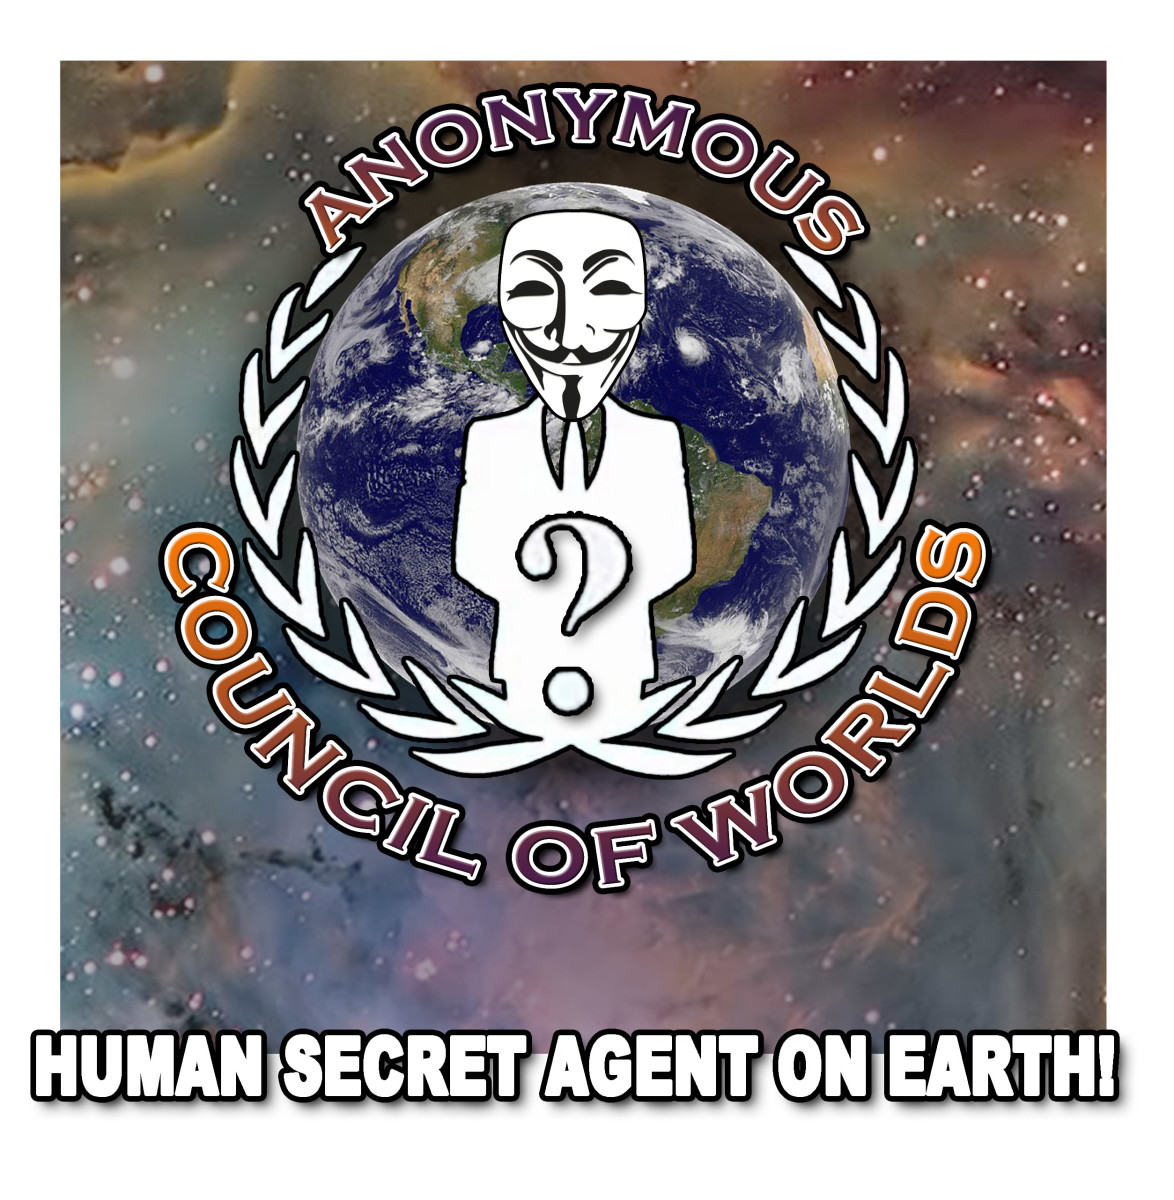 Anonymous is a group used by The Council Of Worlds, to promote the ideology that the truth must be shared with the public on Earth to level the playing field of knowledge that the Cabal censors from the public.